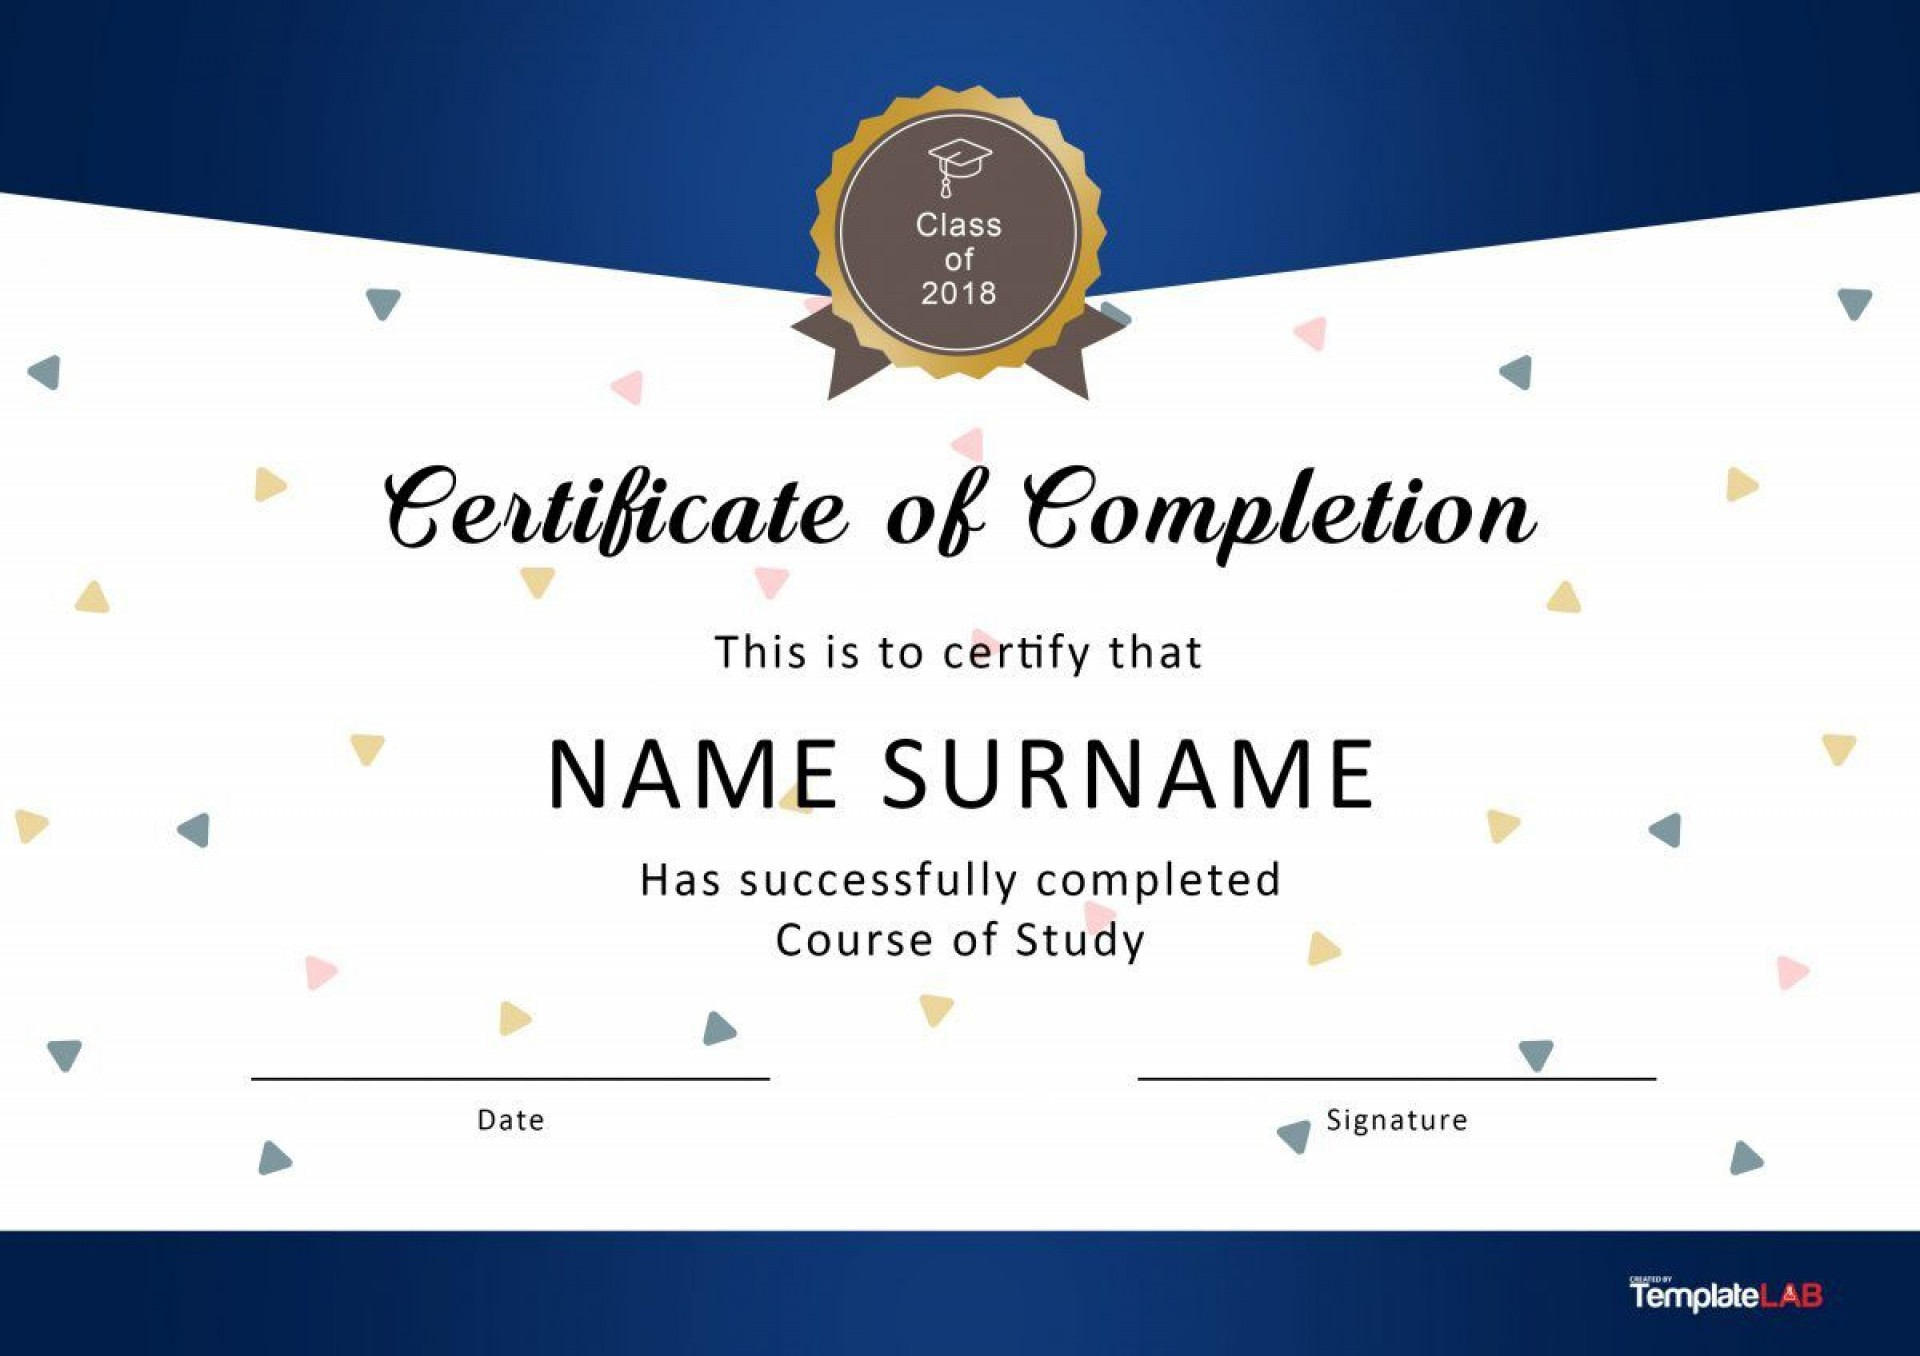 004 Astounding Free Certificate Template Word Image  Blank For Microsoft Award Border Download1920